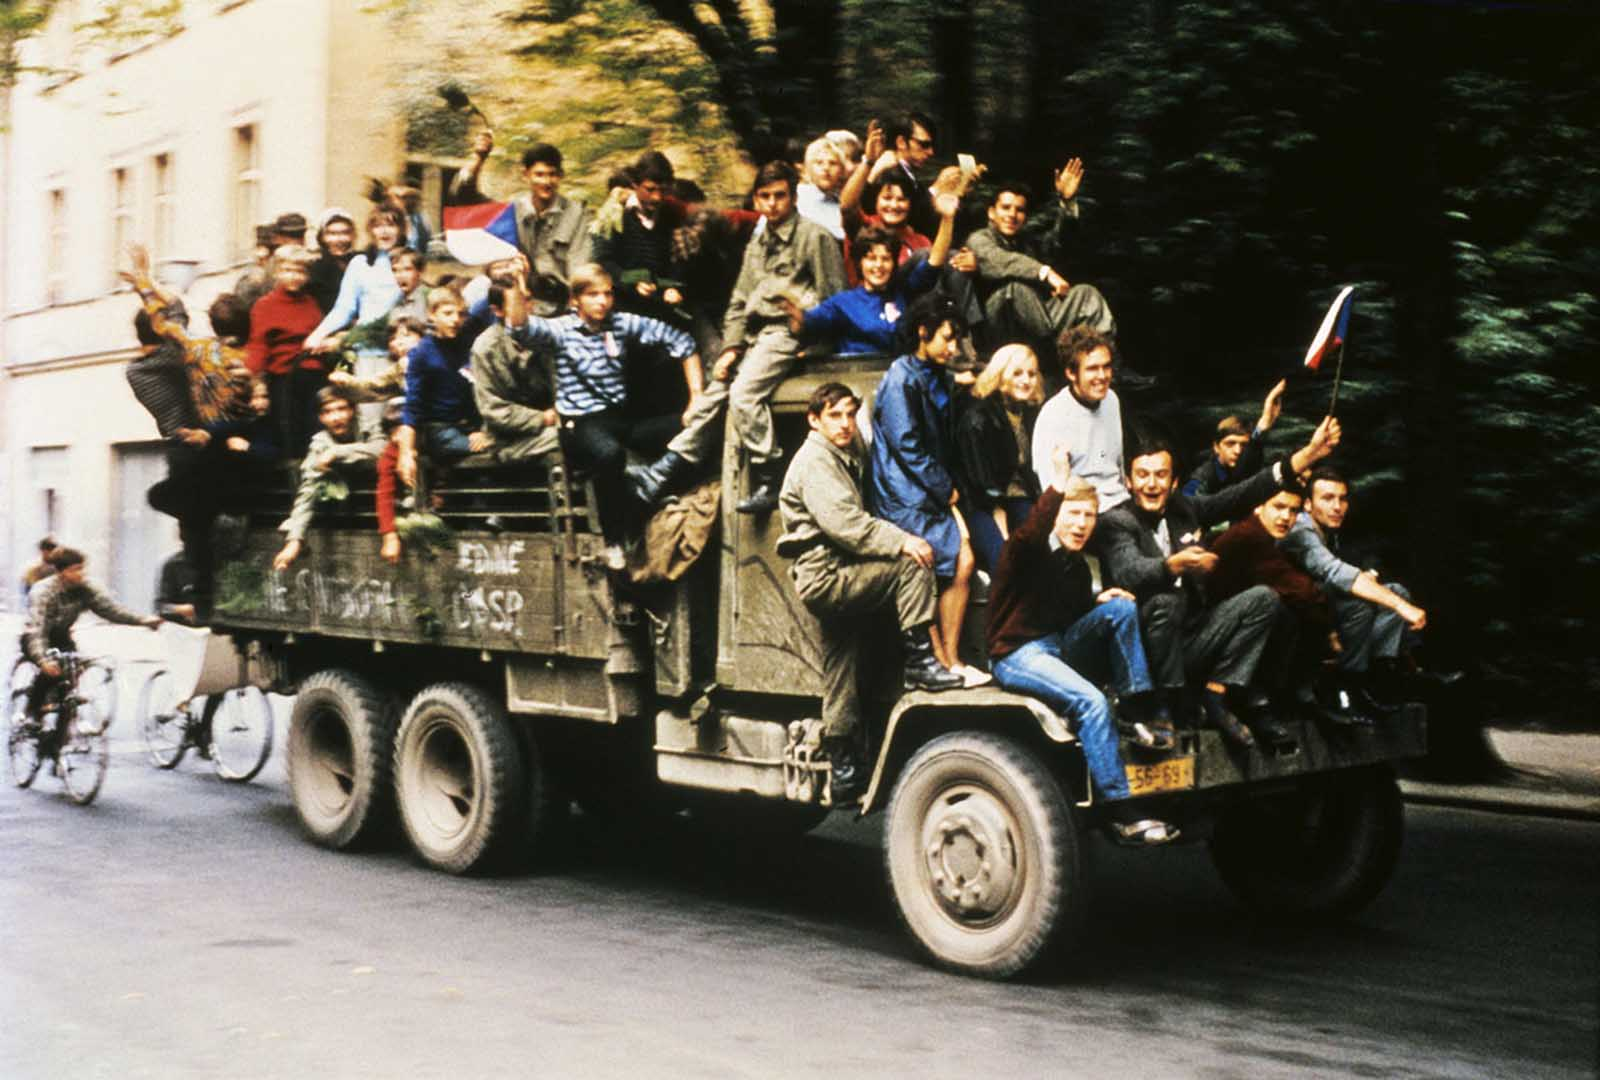 Czechoslovakian army trucks take young people around Prague as Soviet tanks had halted on the outskirts of town and began a siege of Czech army barracks. The passengers waved Czechoslovakian national flags and chanted national songs and patriotic slogans.